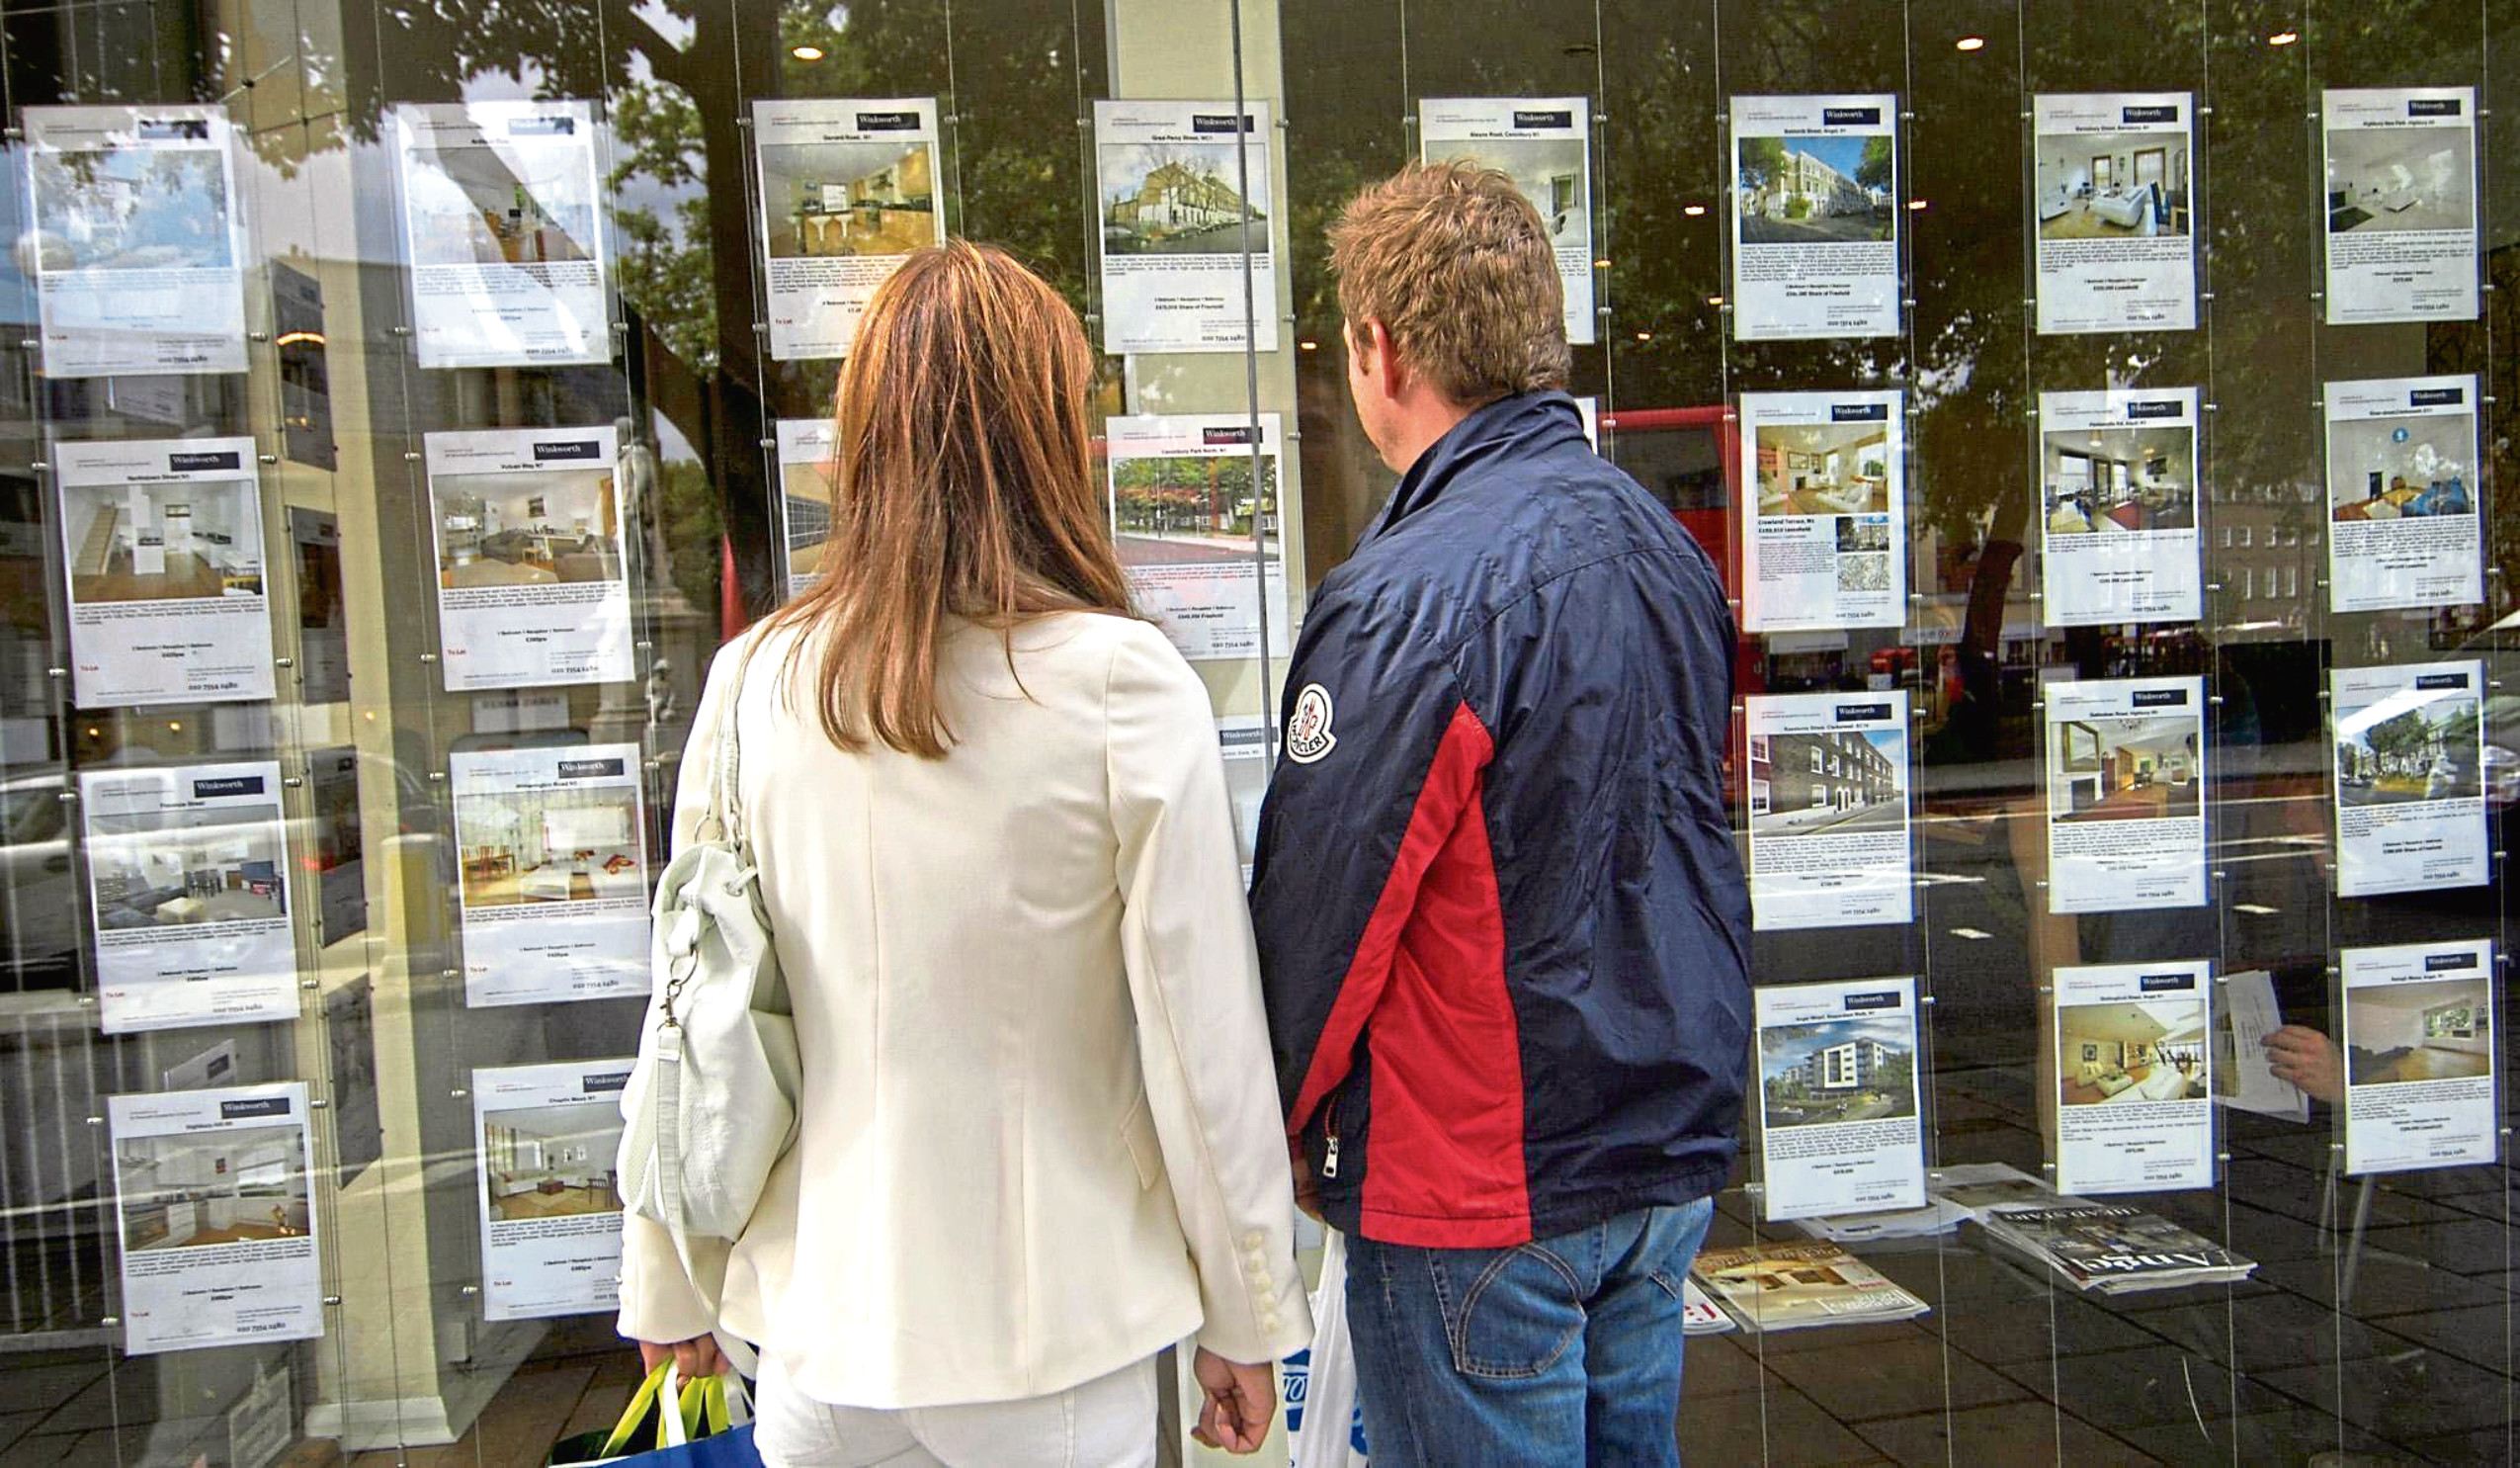 House prices in the north-east have continued to rise